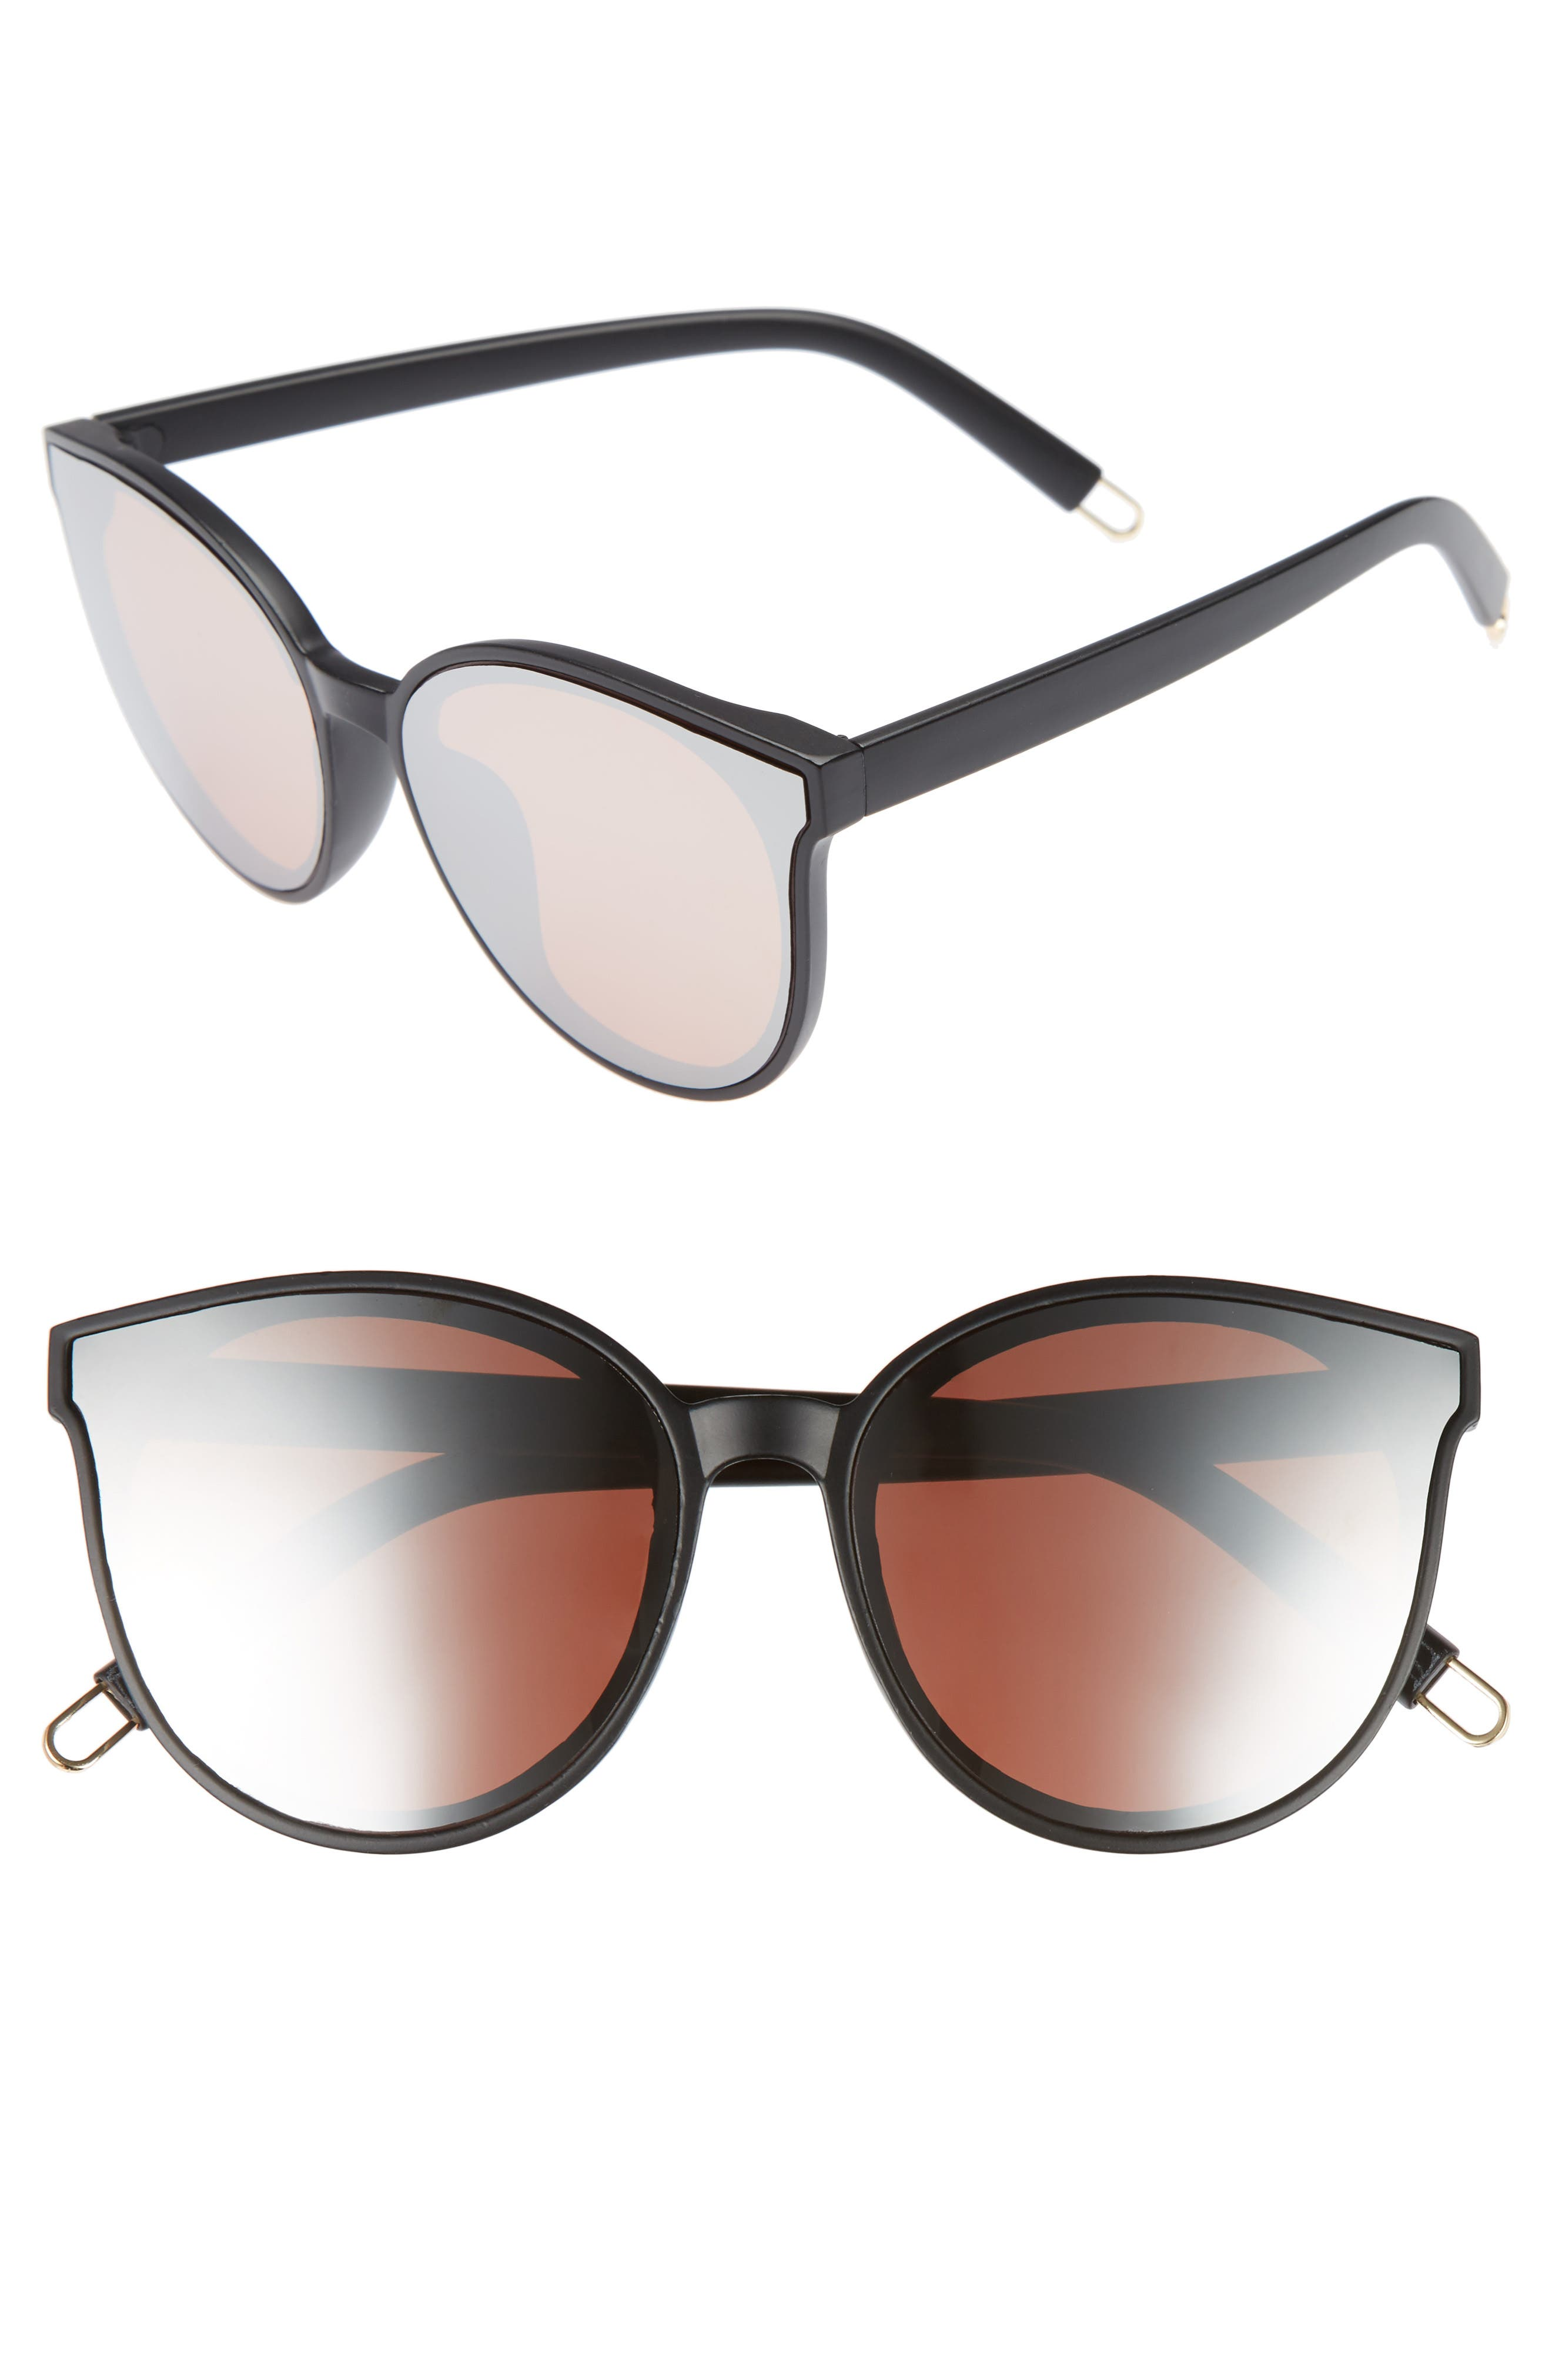 59mm Metal Tip Round Sunglasses,                             Main thumbnail 1, color,                             Black/ Rose Gold